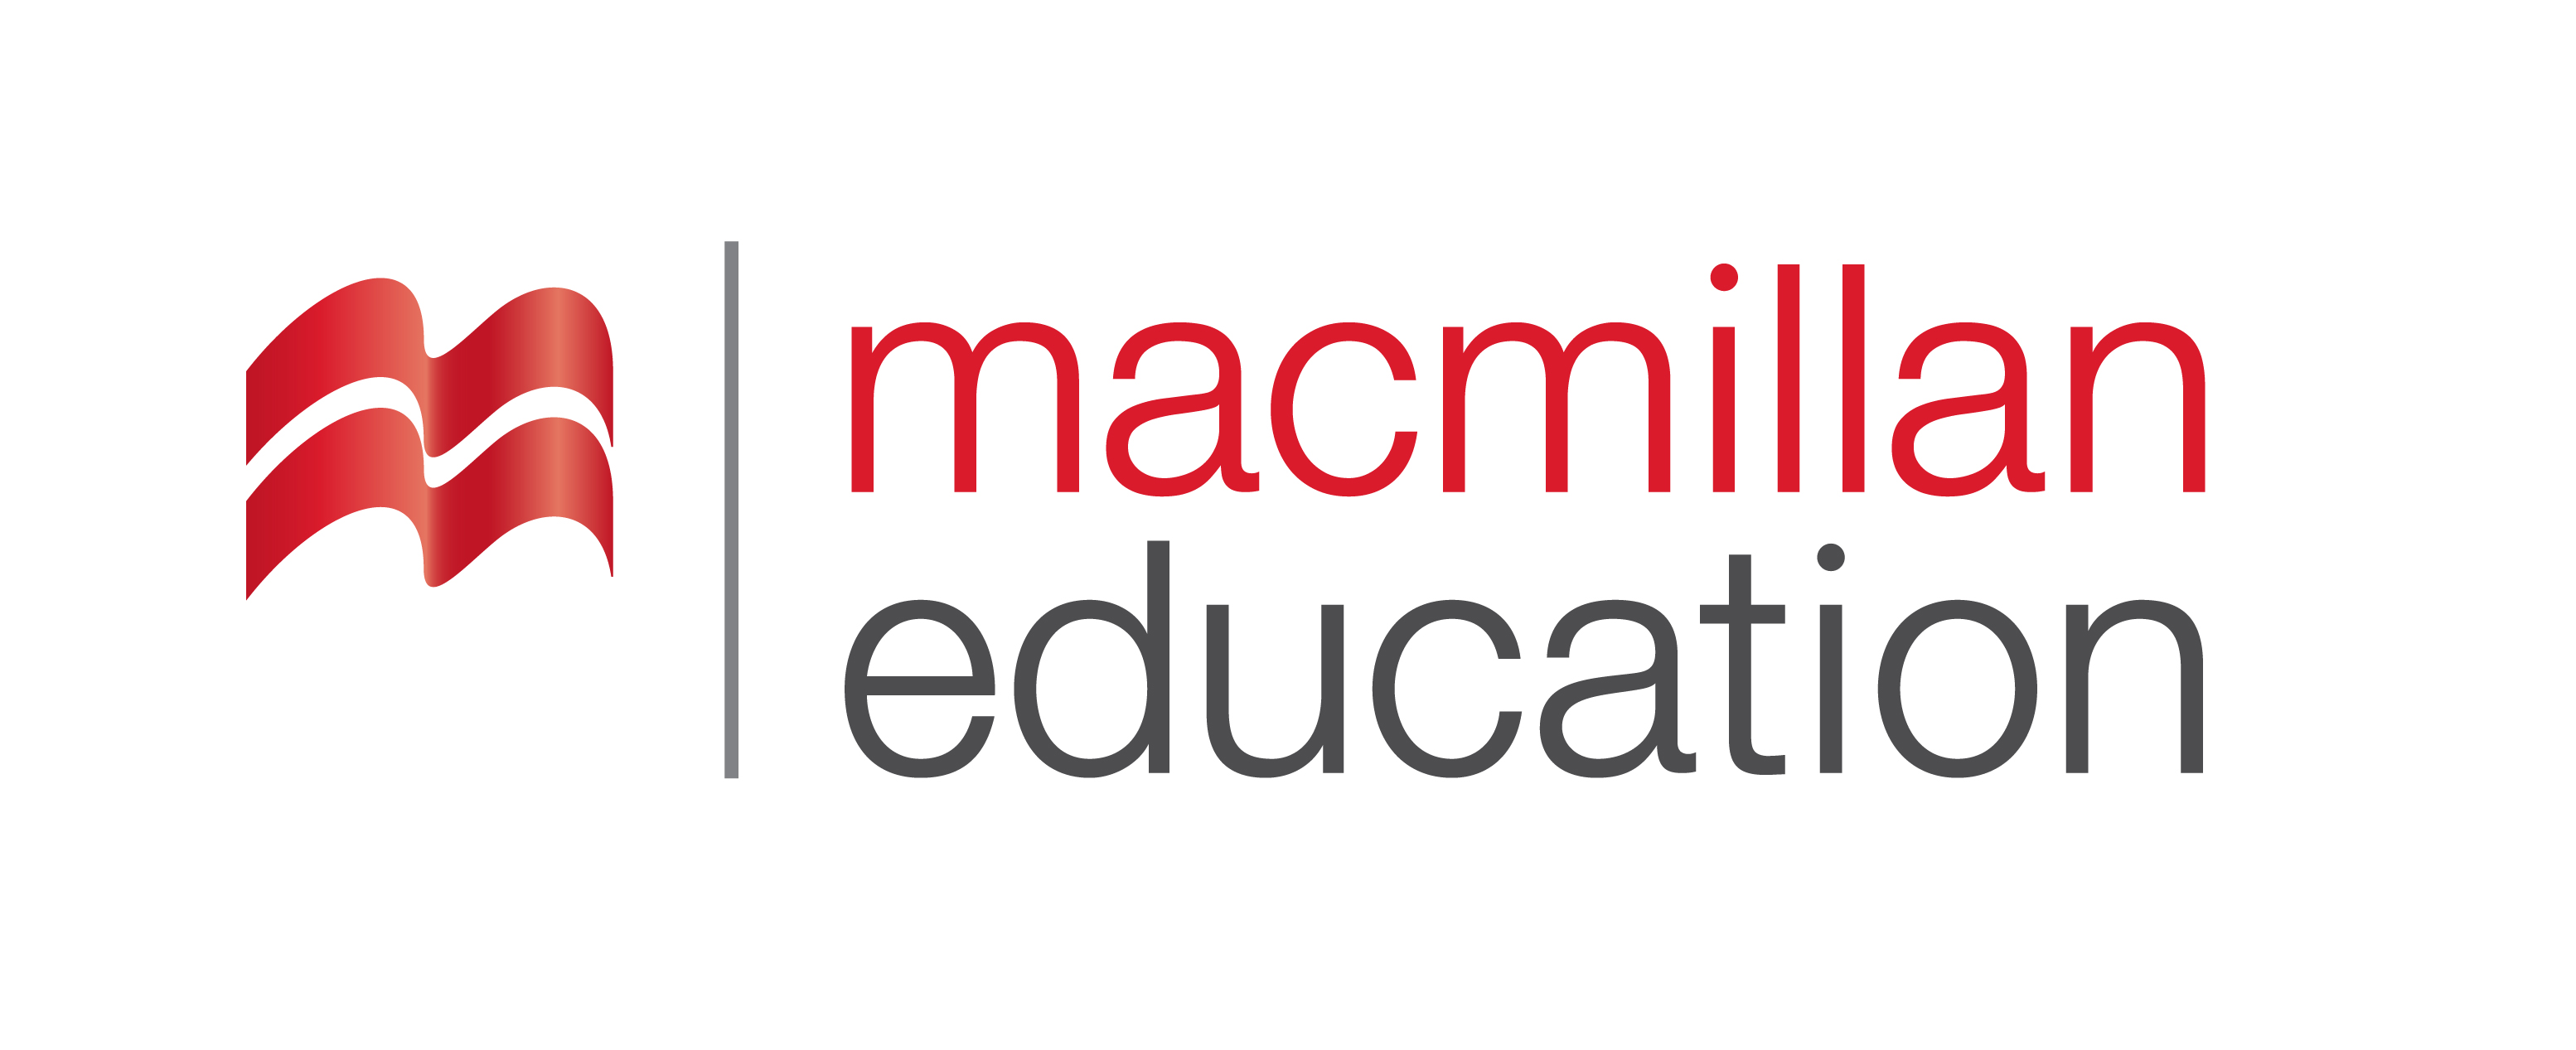 Macmillan-Education.jpg